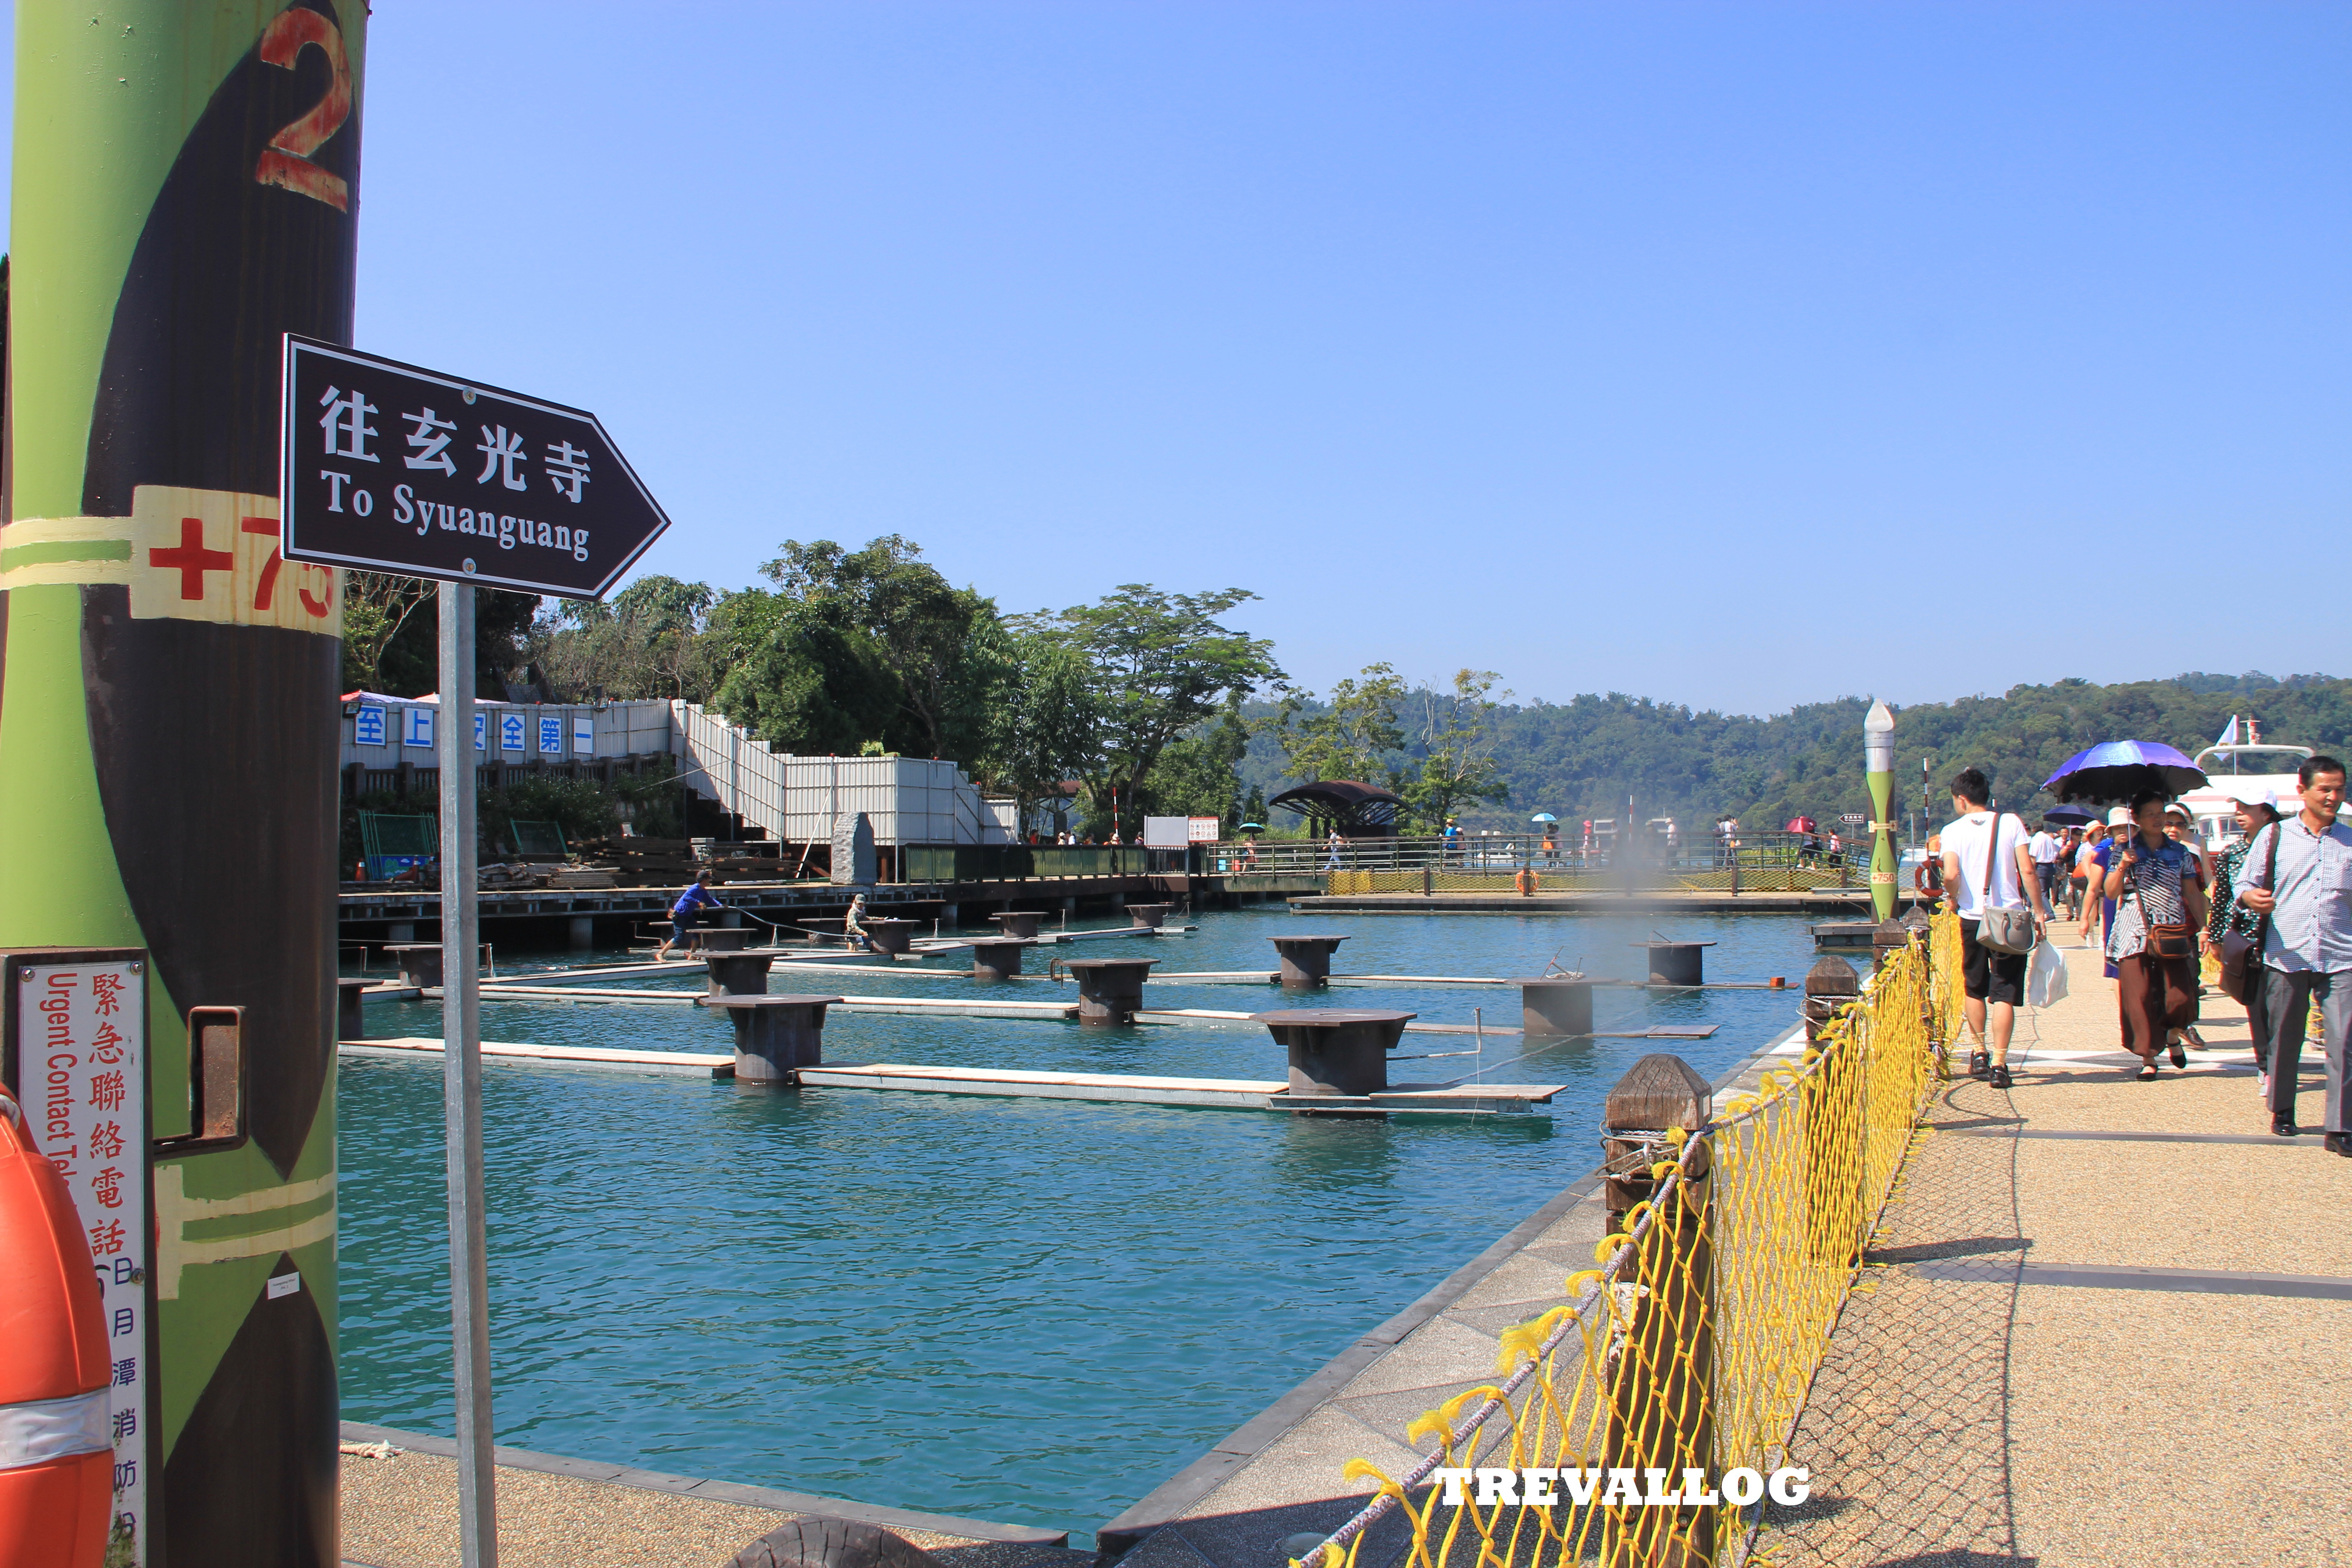 First stop of the ferry journey is Syuanguang, at Sun Moon Lake, Taiwan